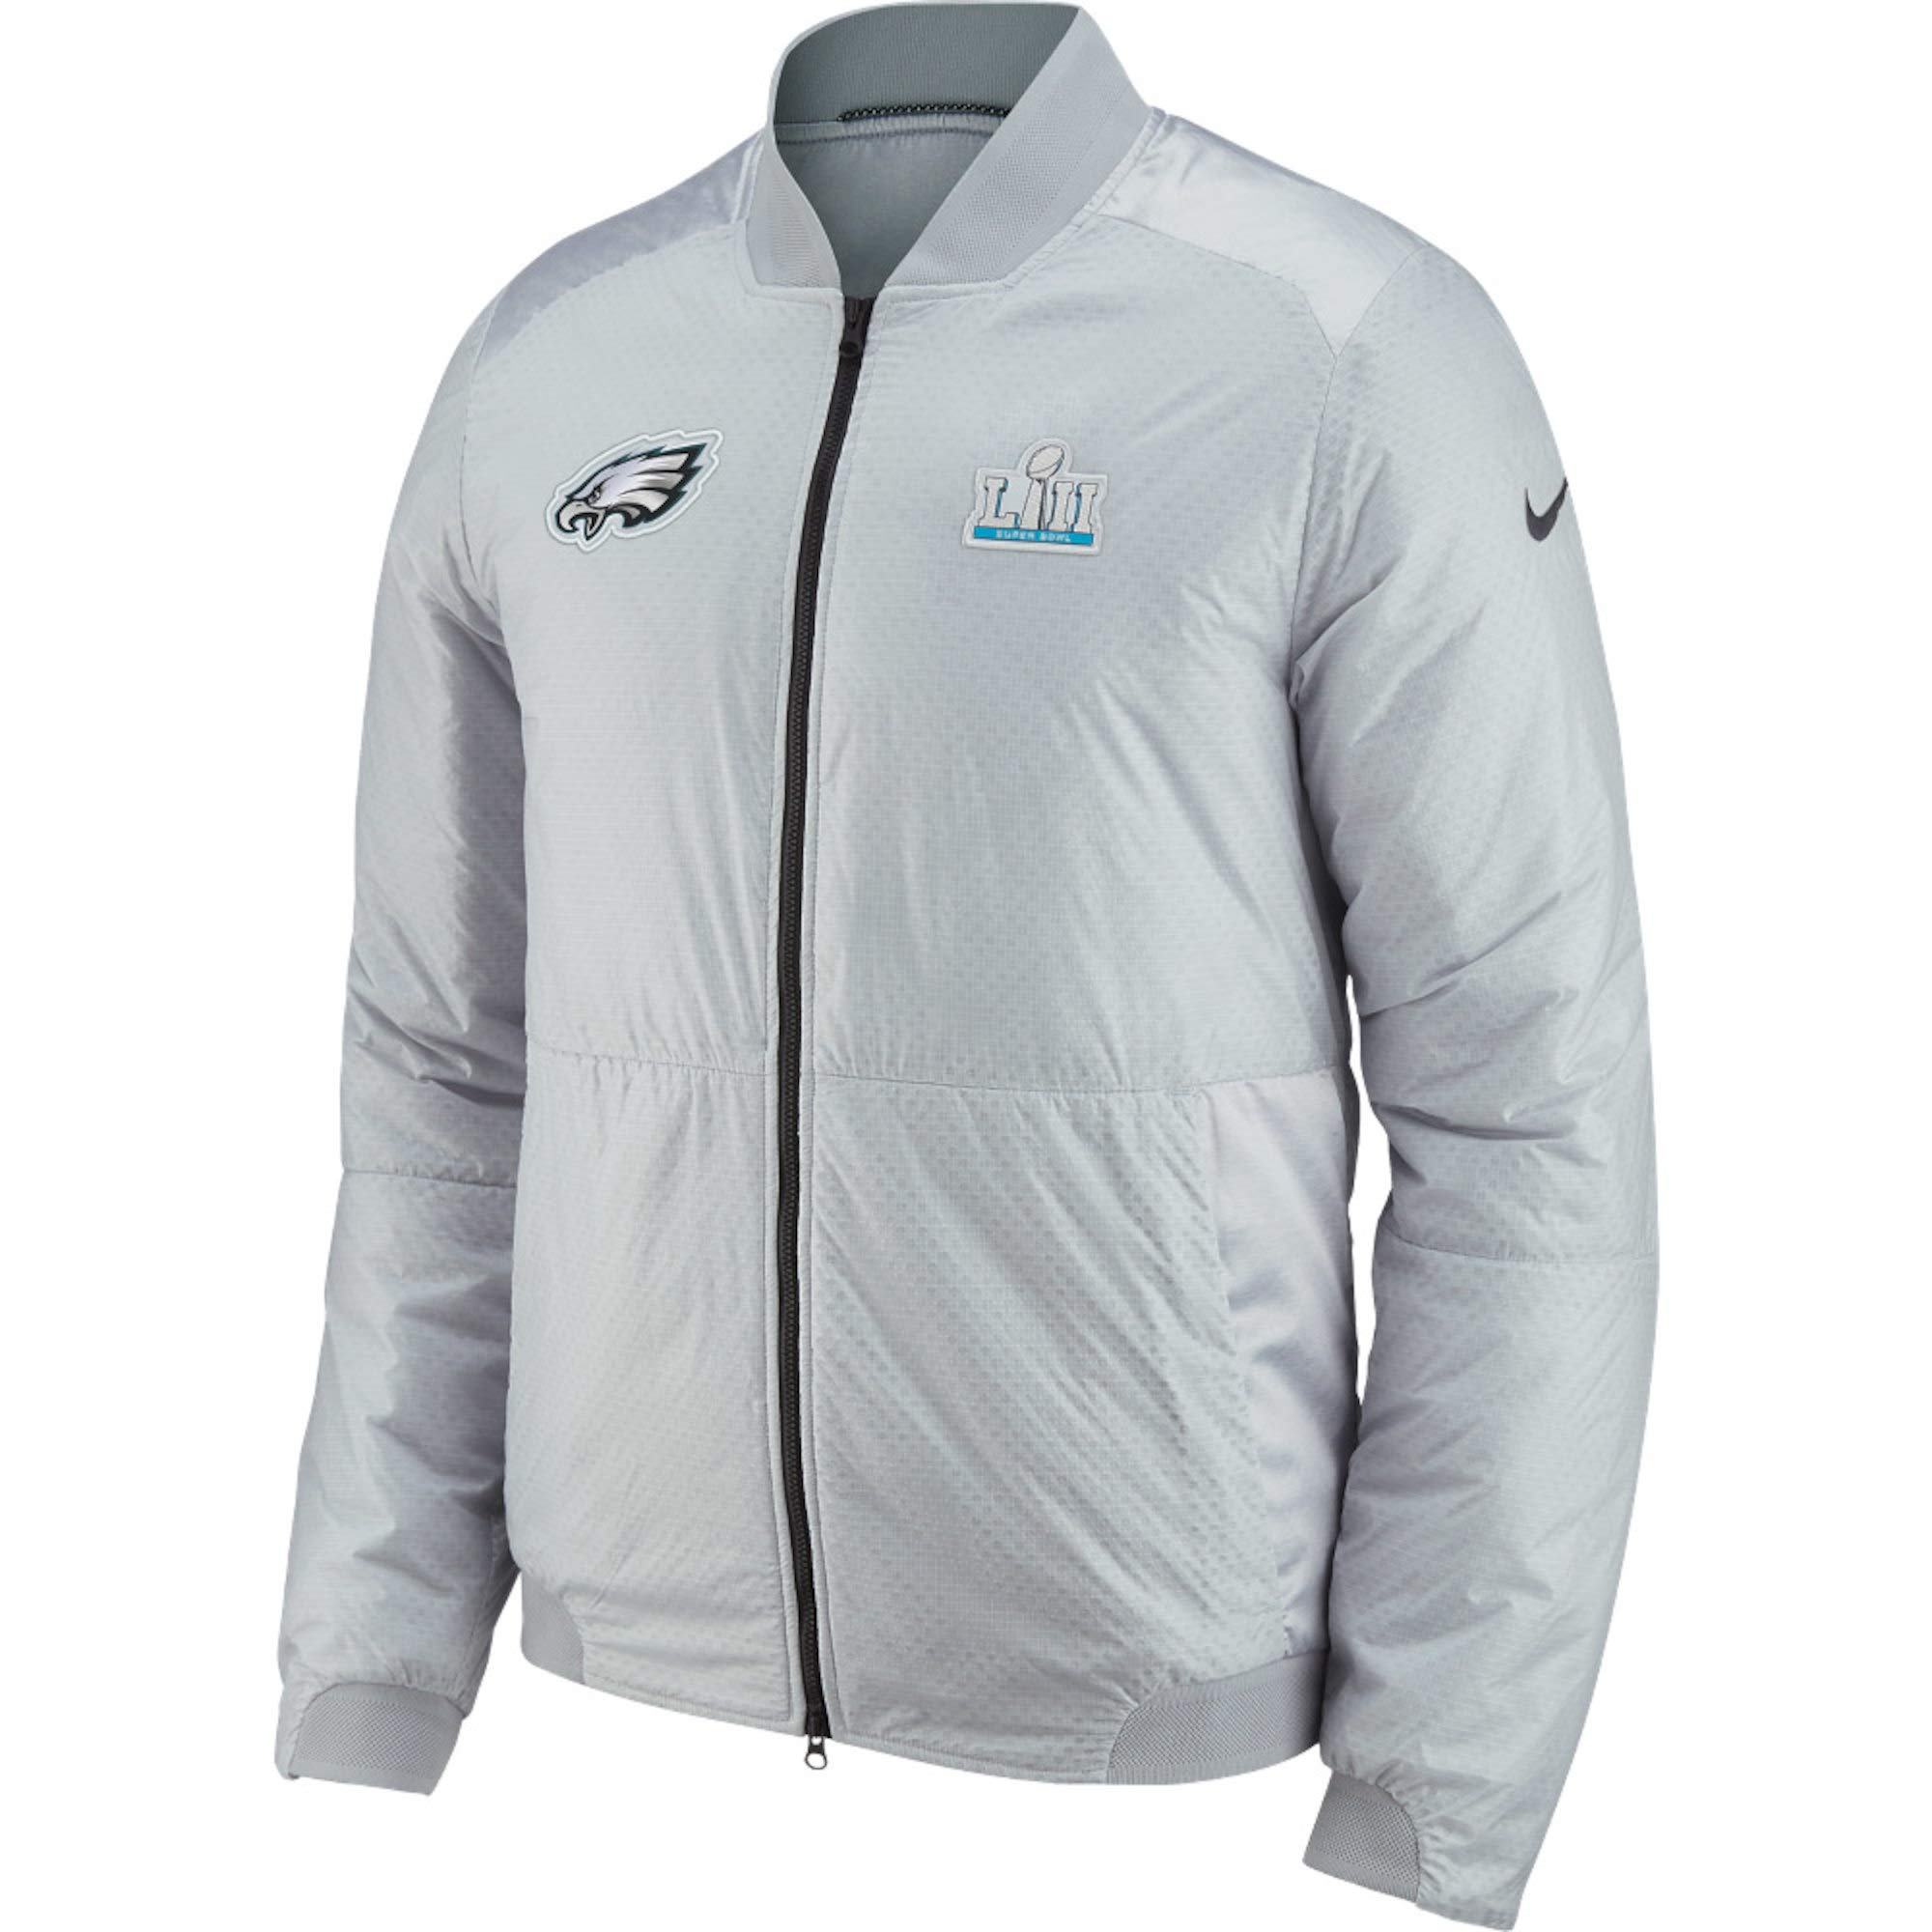 Nike Philadelphia Eagles Platinum Super Bowl LII Media Night Bomber Full-Zip  Jacket - Men s 6802e72bd